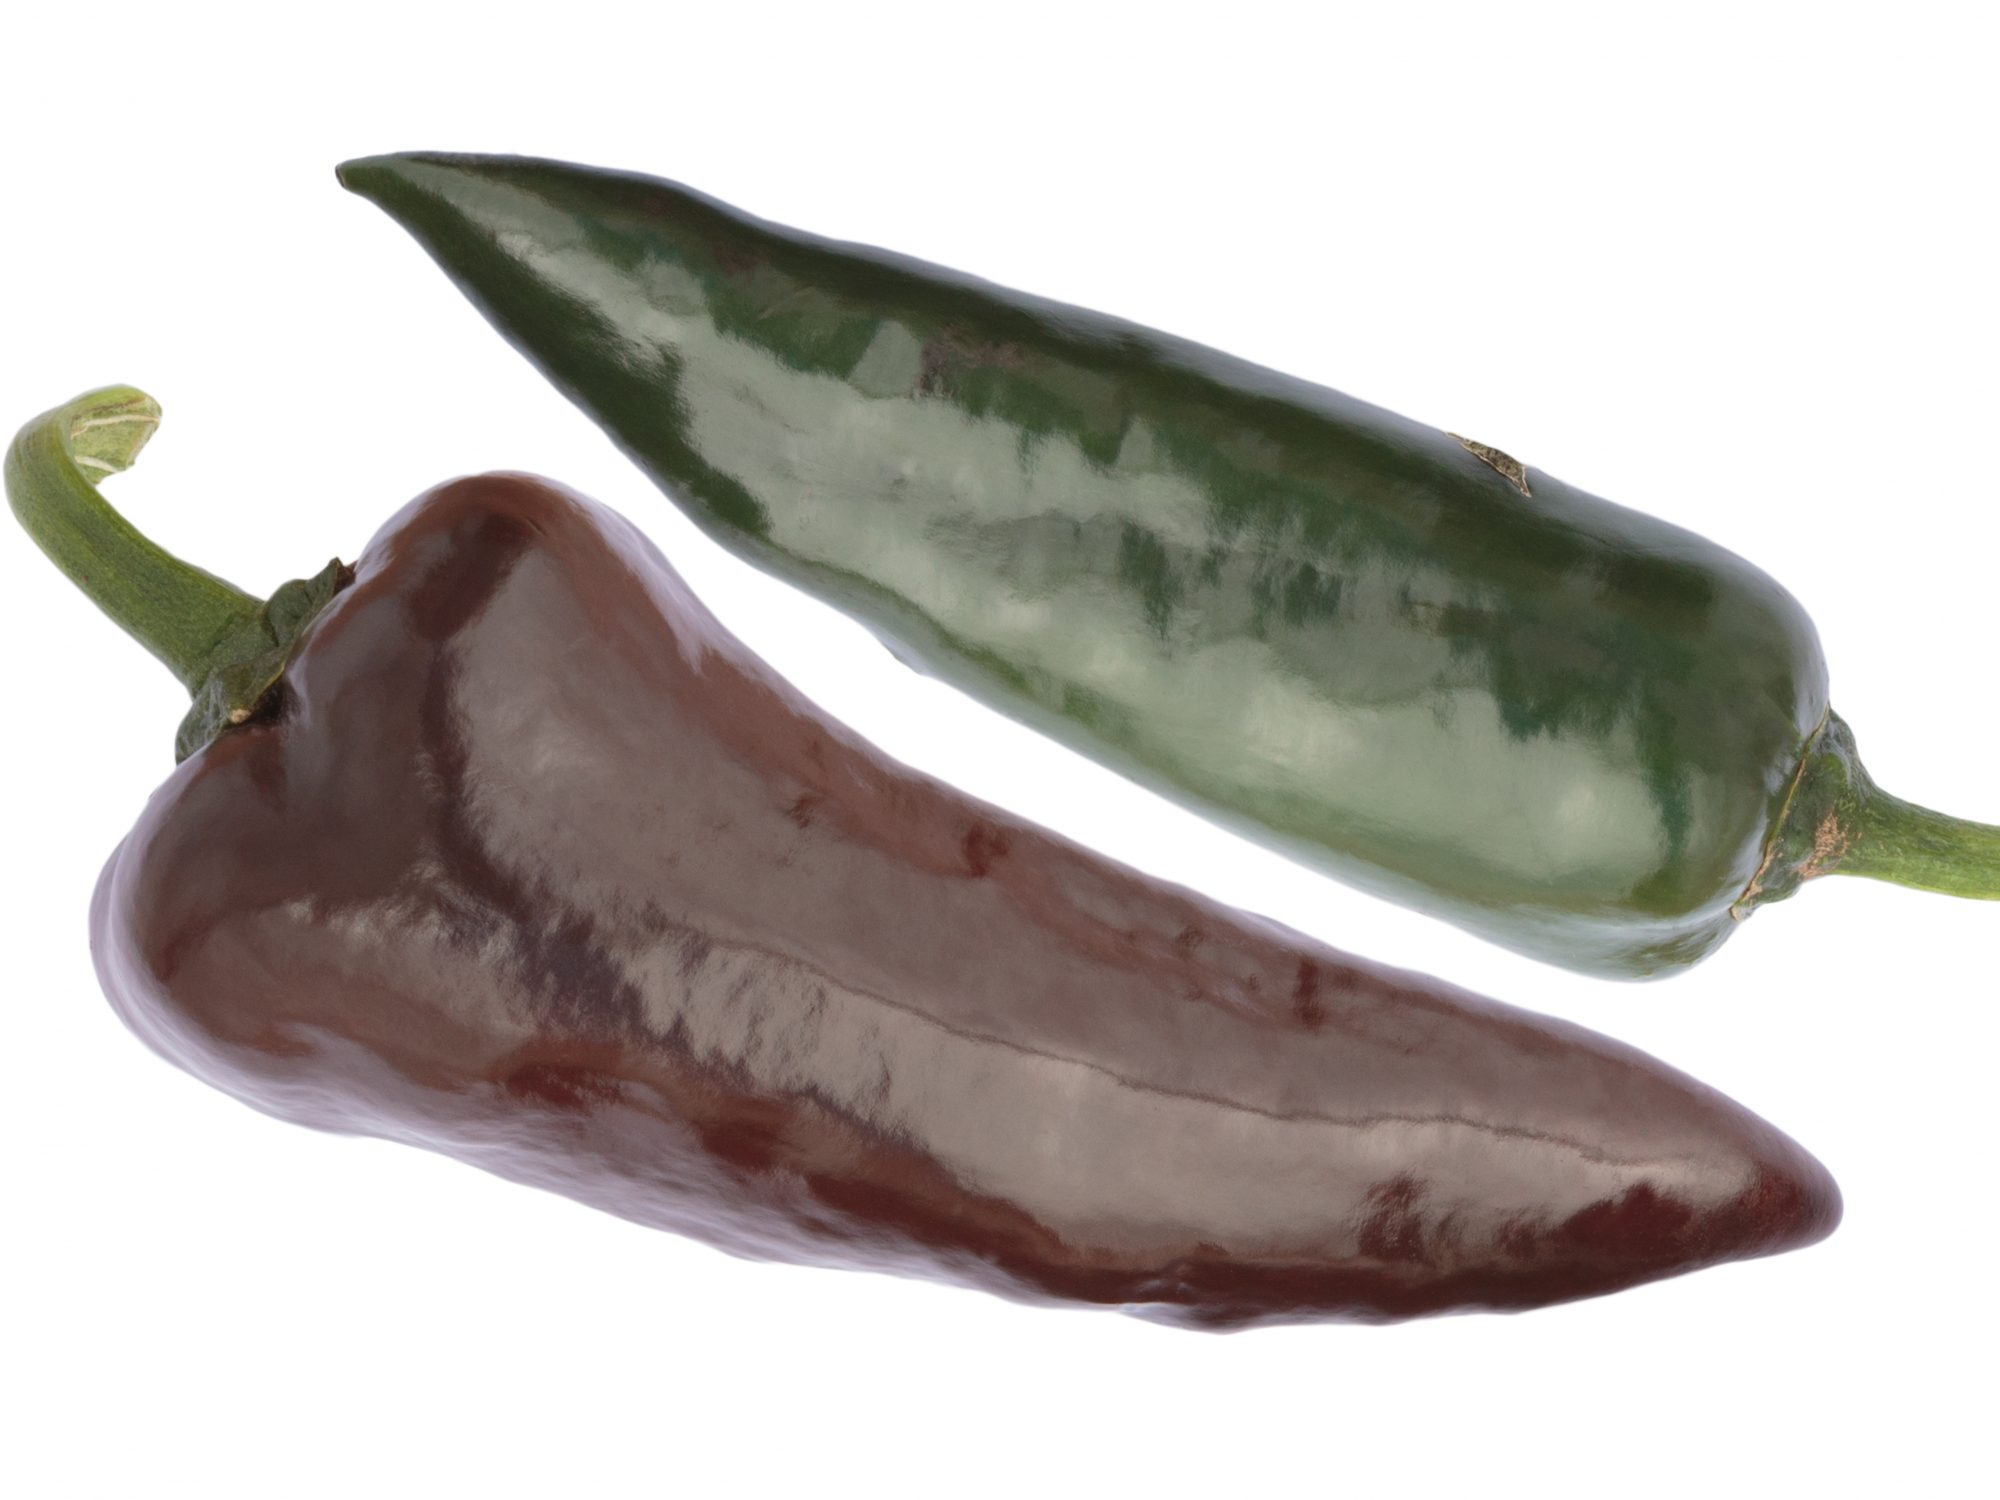 The Pasilla (Chilaca) - a brown variety of chili pepper. The rather large pods ( 15 cm) are medium hot with a heat lefel of 5-6 (from 0 to 10). A brown and a unripe green pod against white background.